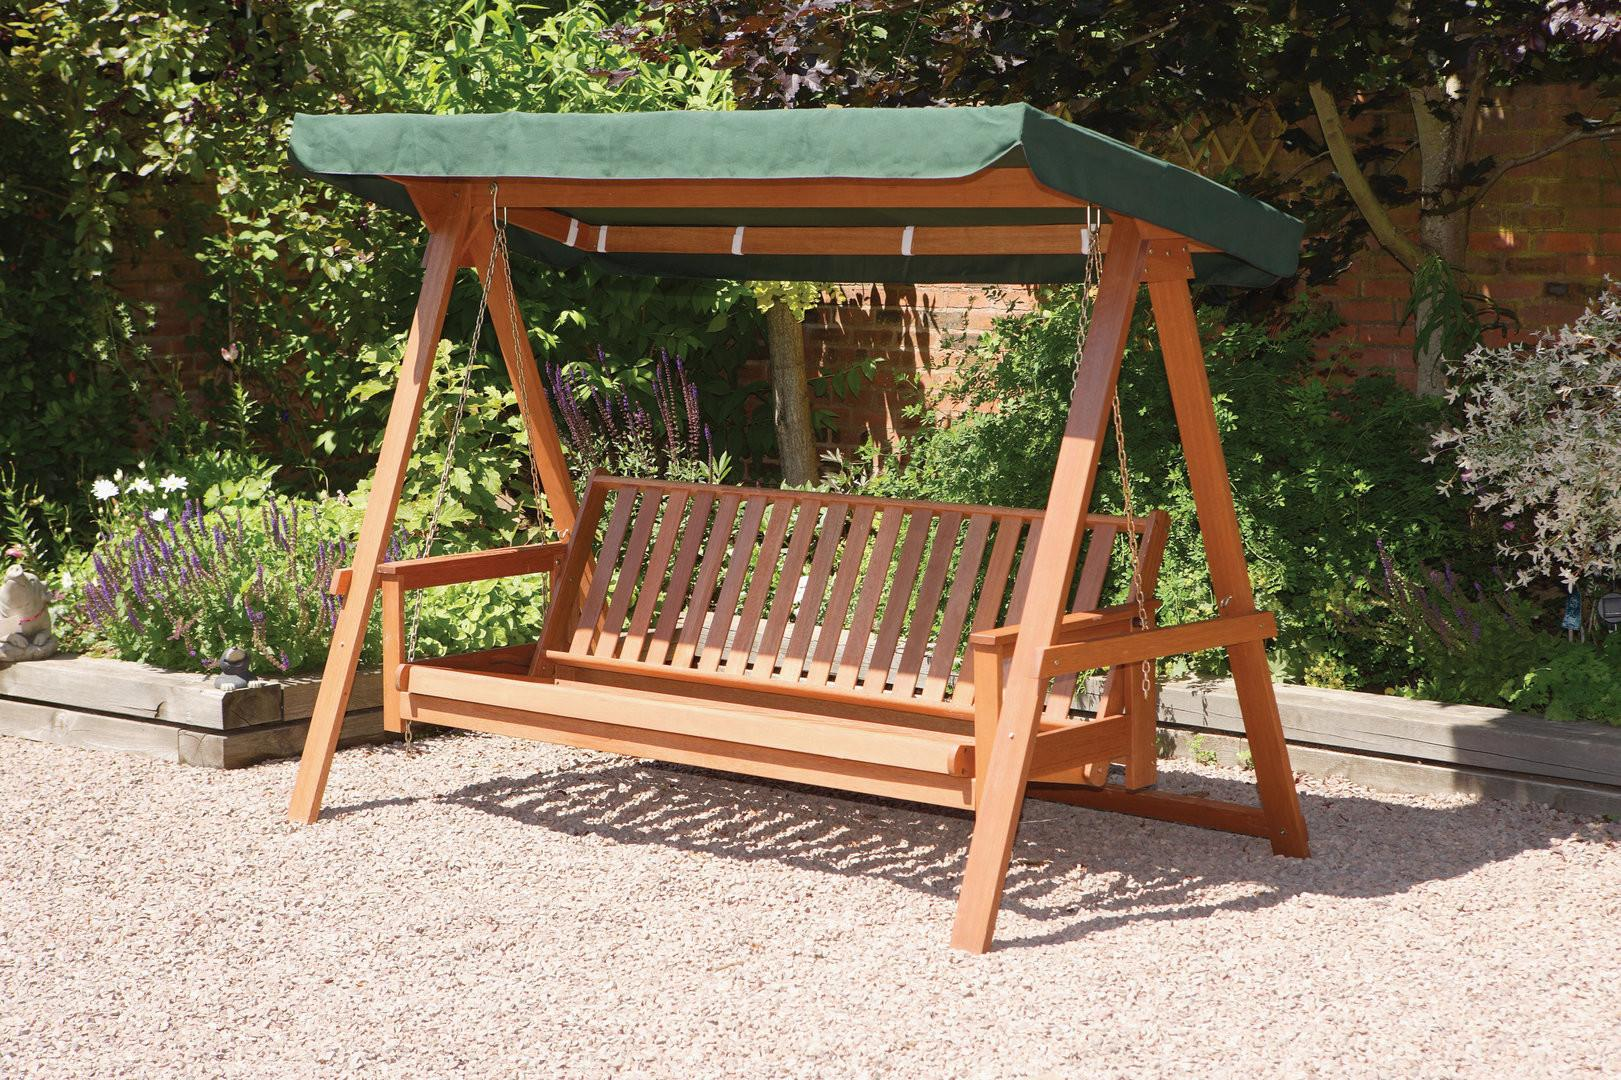 Quality Wooden Seater Garden Swing Bed Hammock